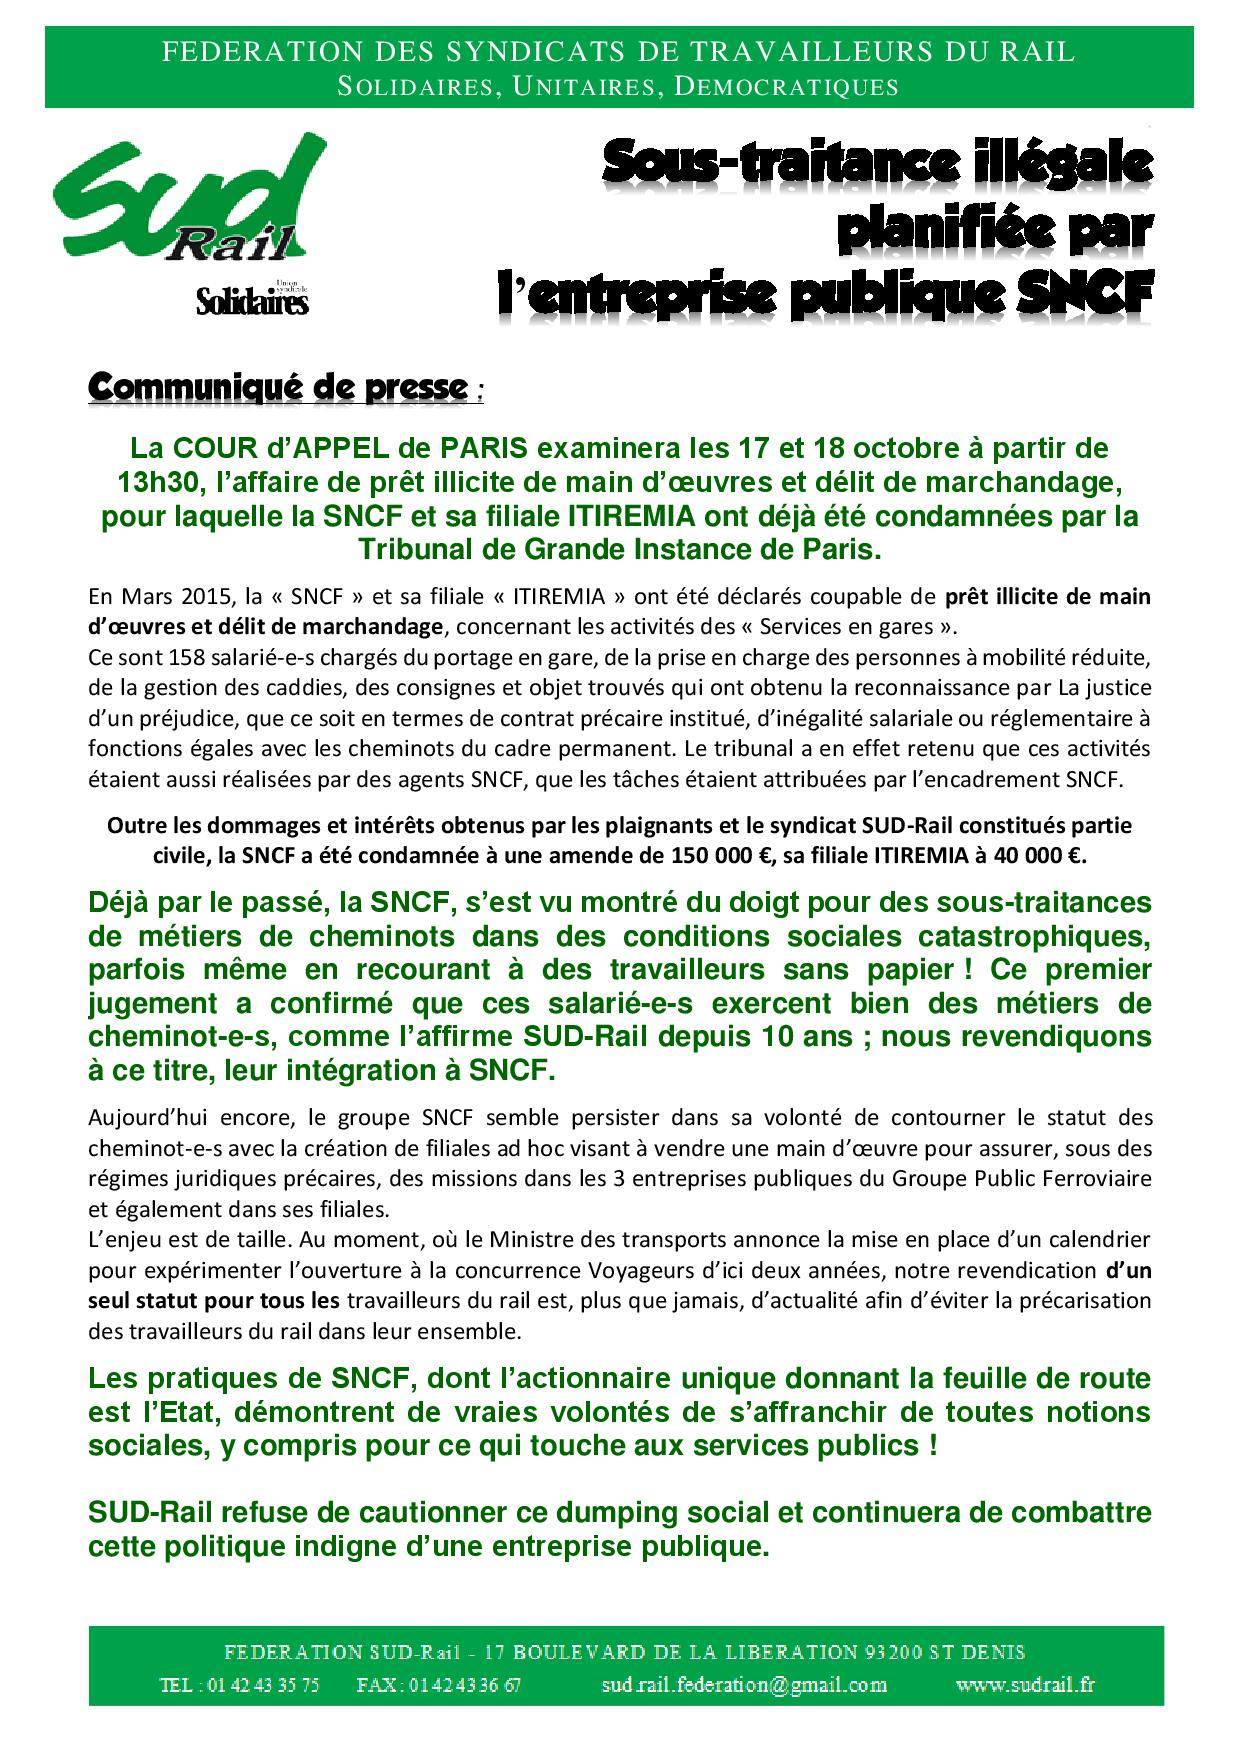 sncf-condamnee-sous-traitance-illegale-10-2016-page-001